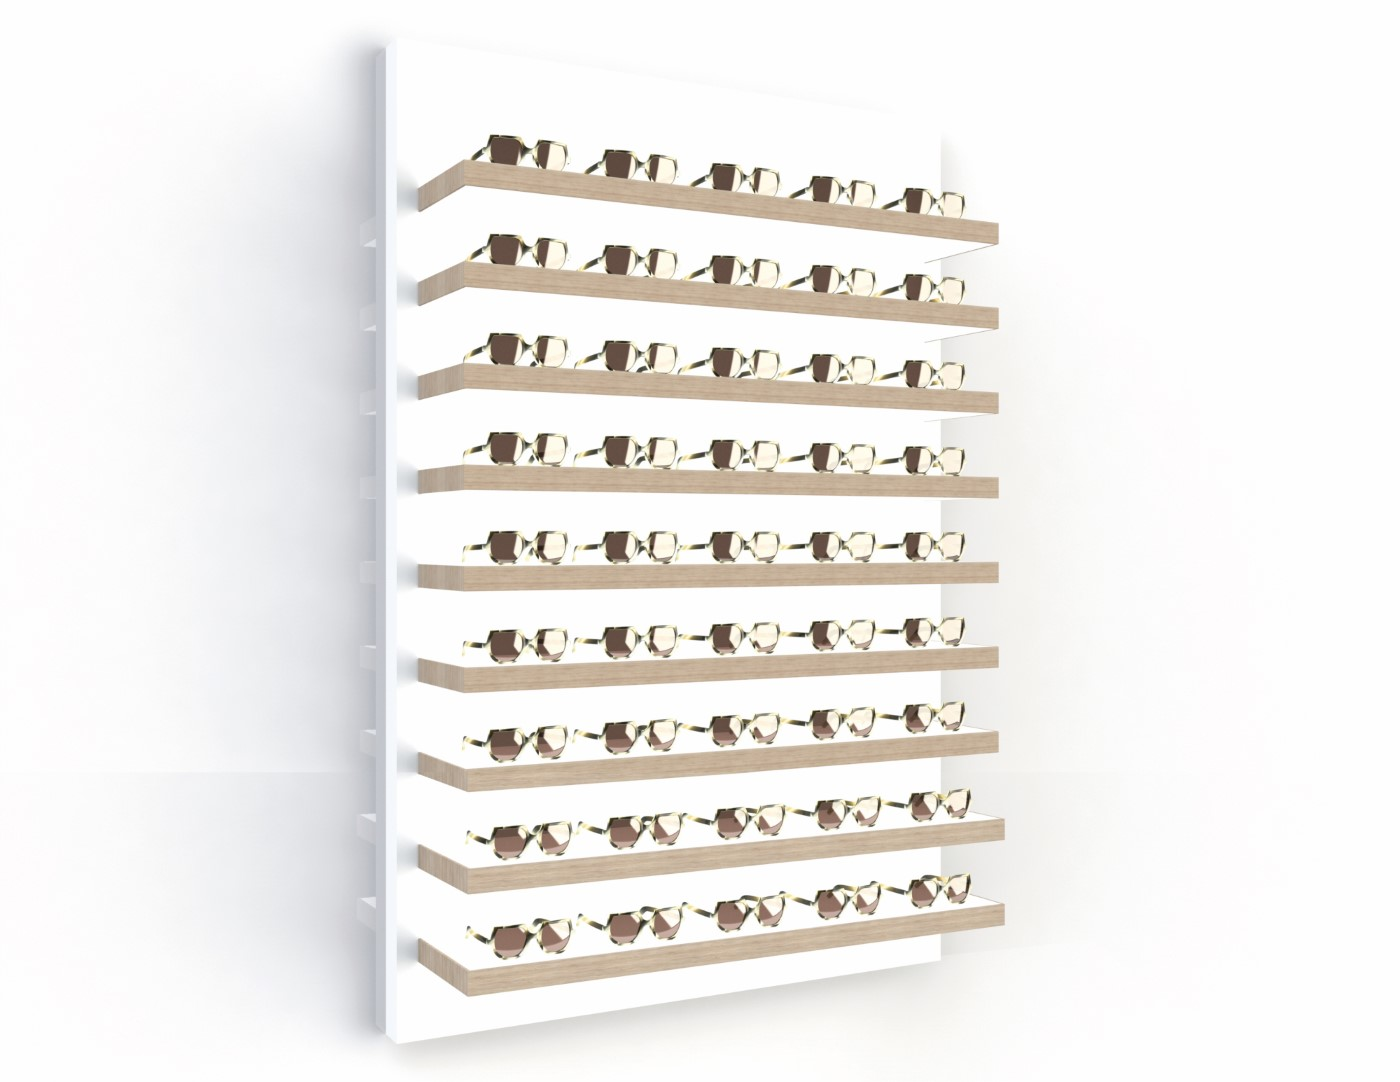 <strong>#58170W-ST</strong><br>9x 35mm LED shelves<br>45 frames